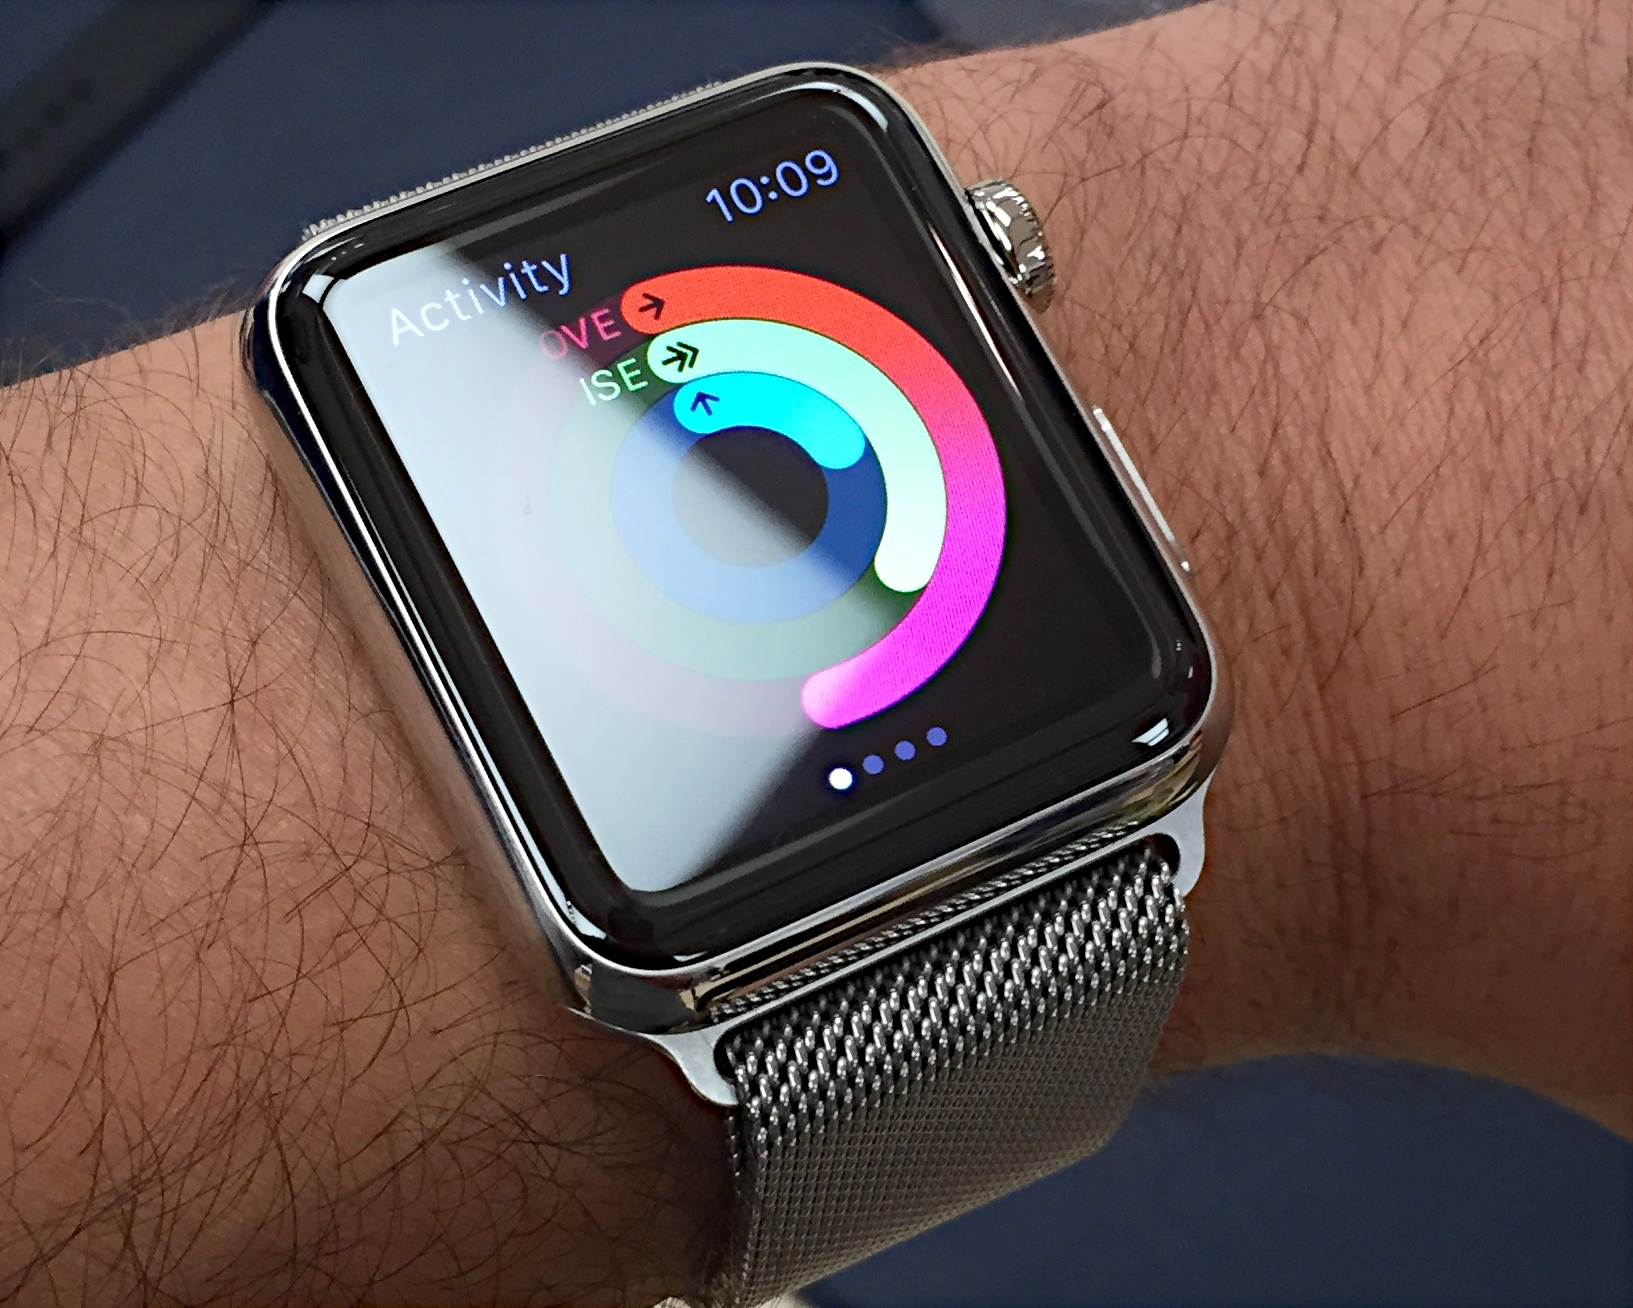 Apple Watch with Milanese loop bracelet (2015)